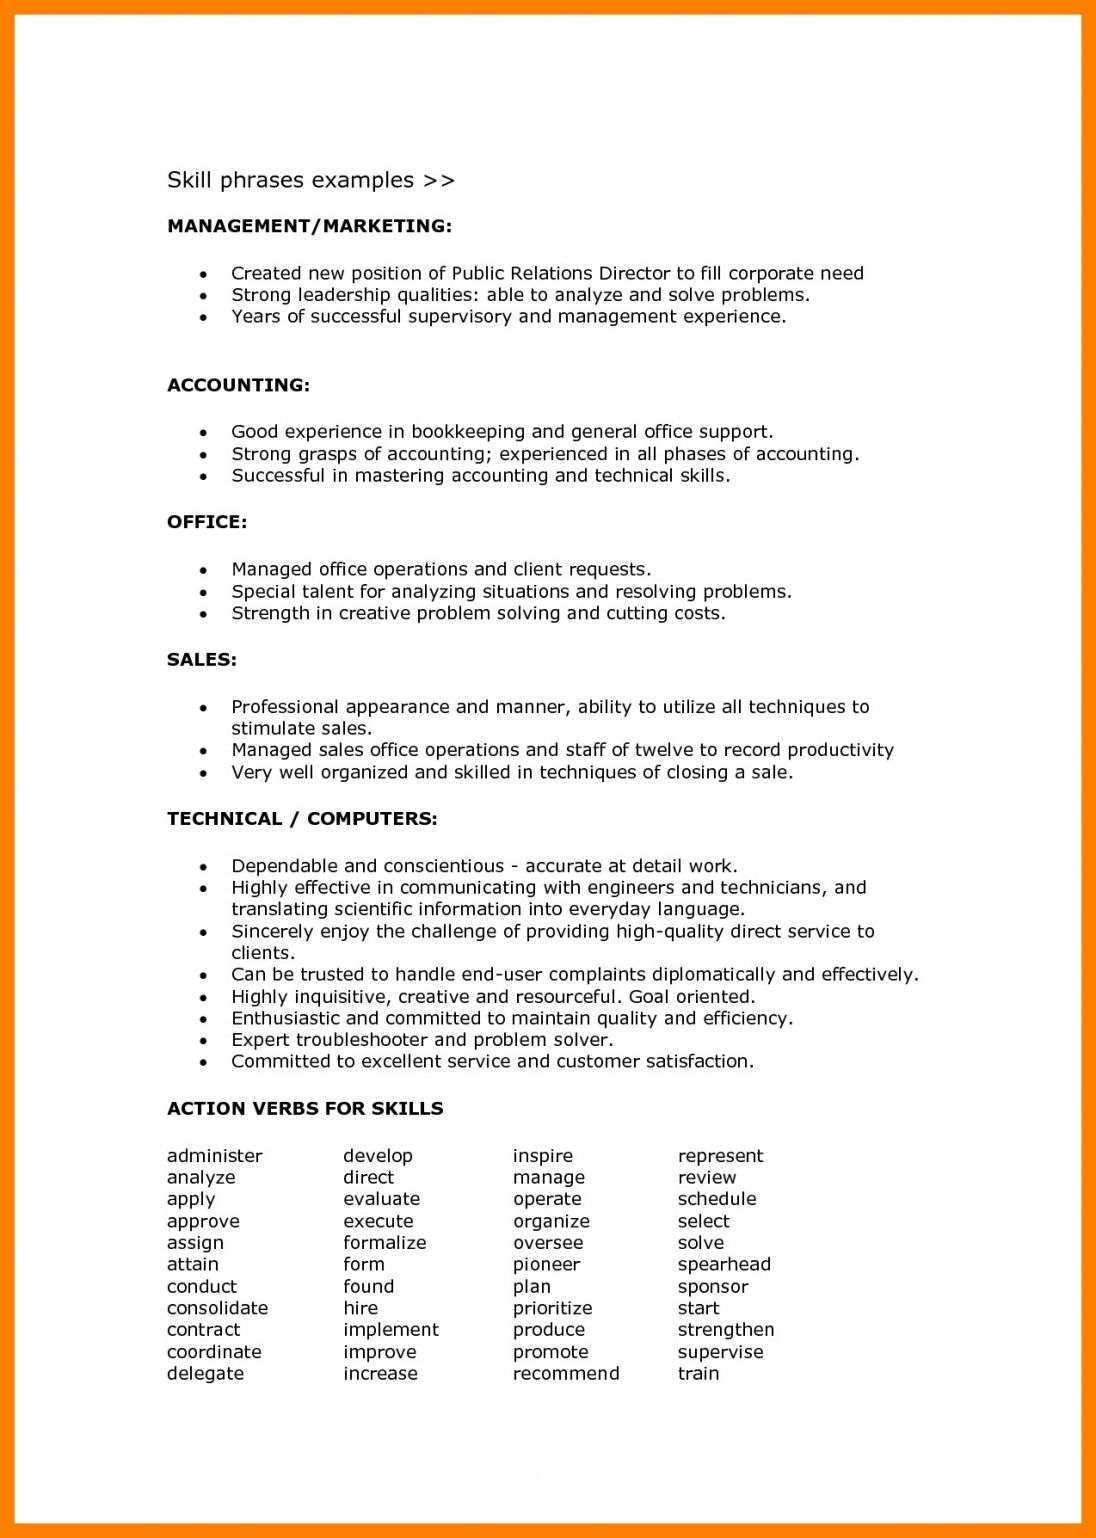 skills to list on a resume for customer service